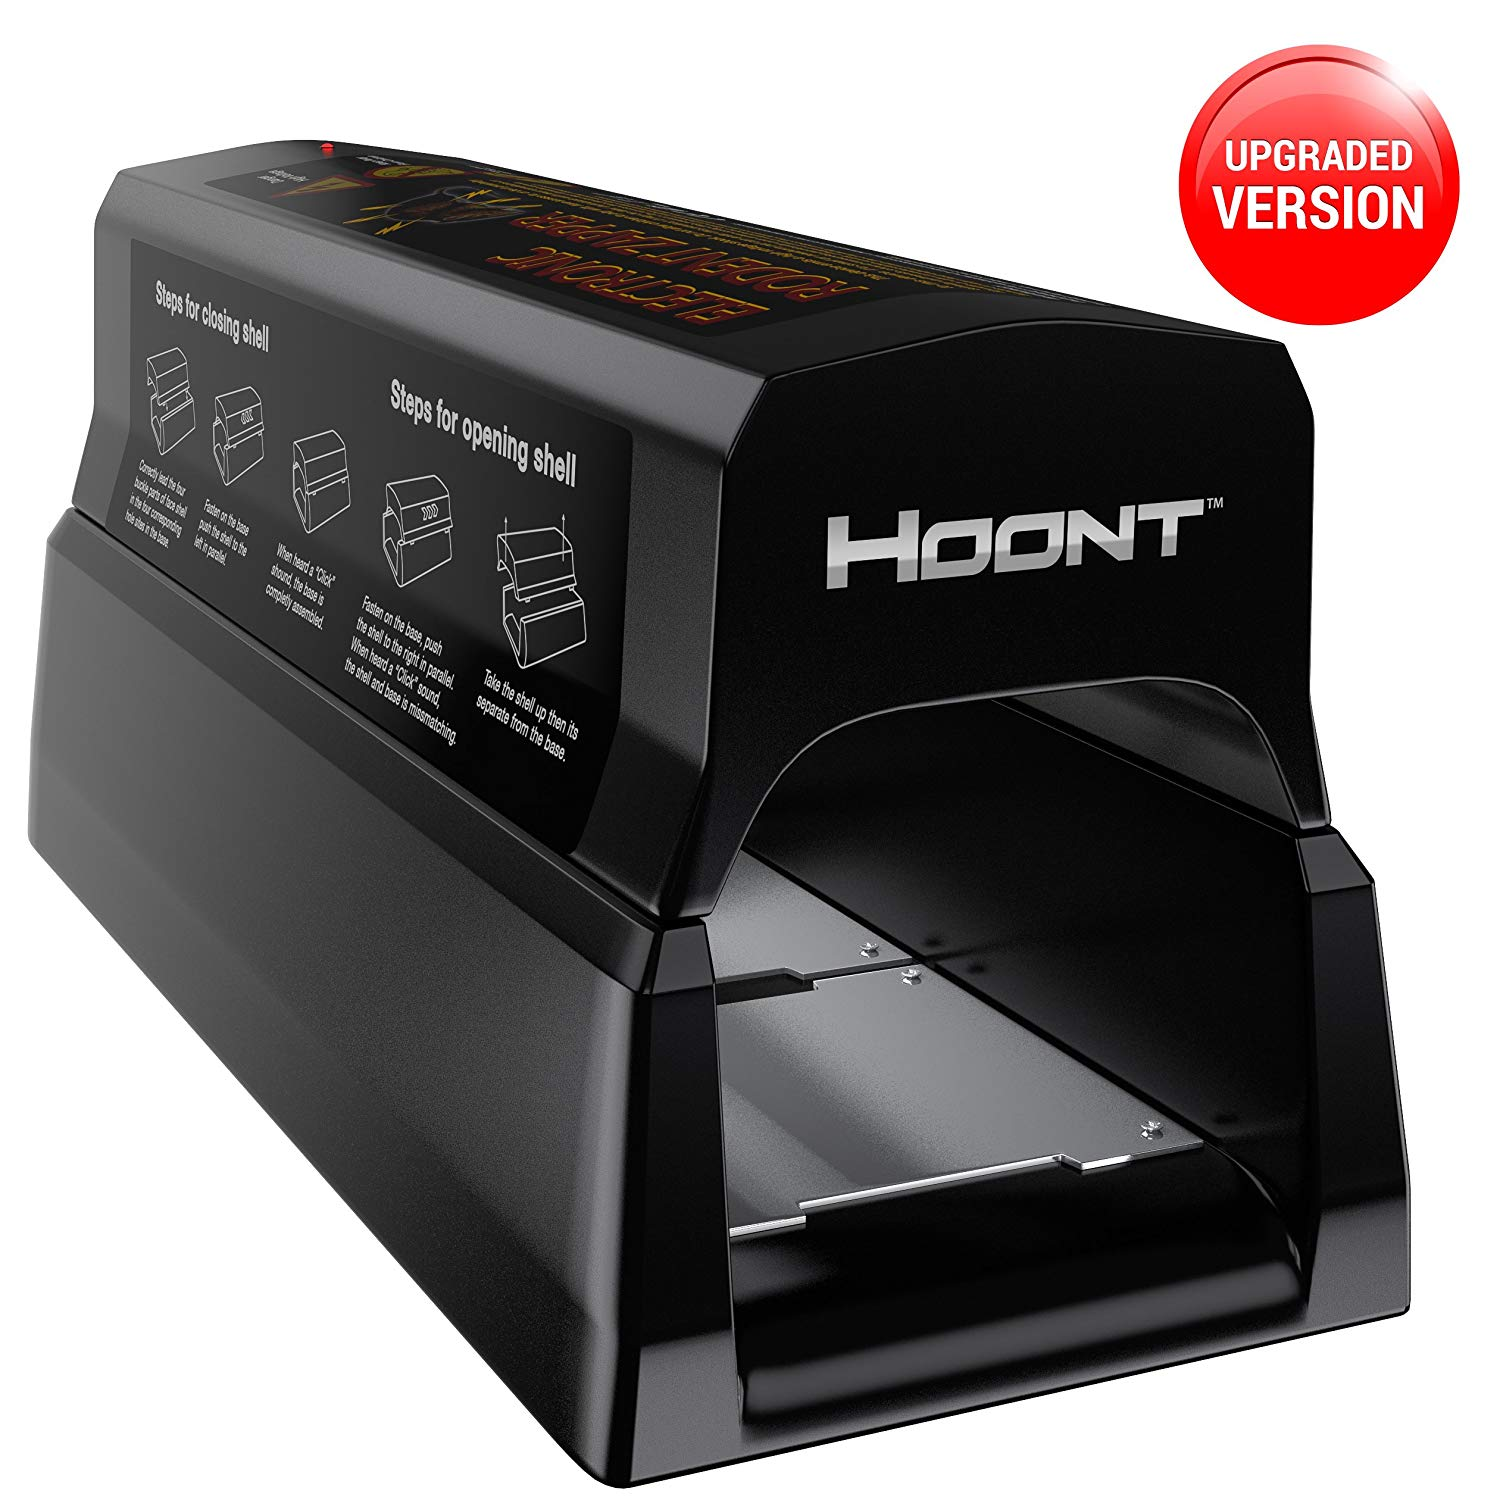 Hoont Powerful Electronic Rodent Trap - Clean and Humane Extermination of Rats, Mice and Squirrels [UPGRADED VERSION]